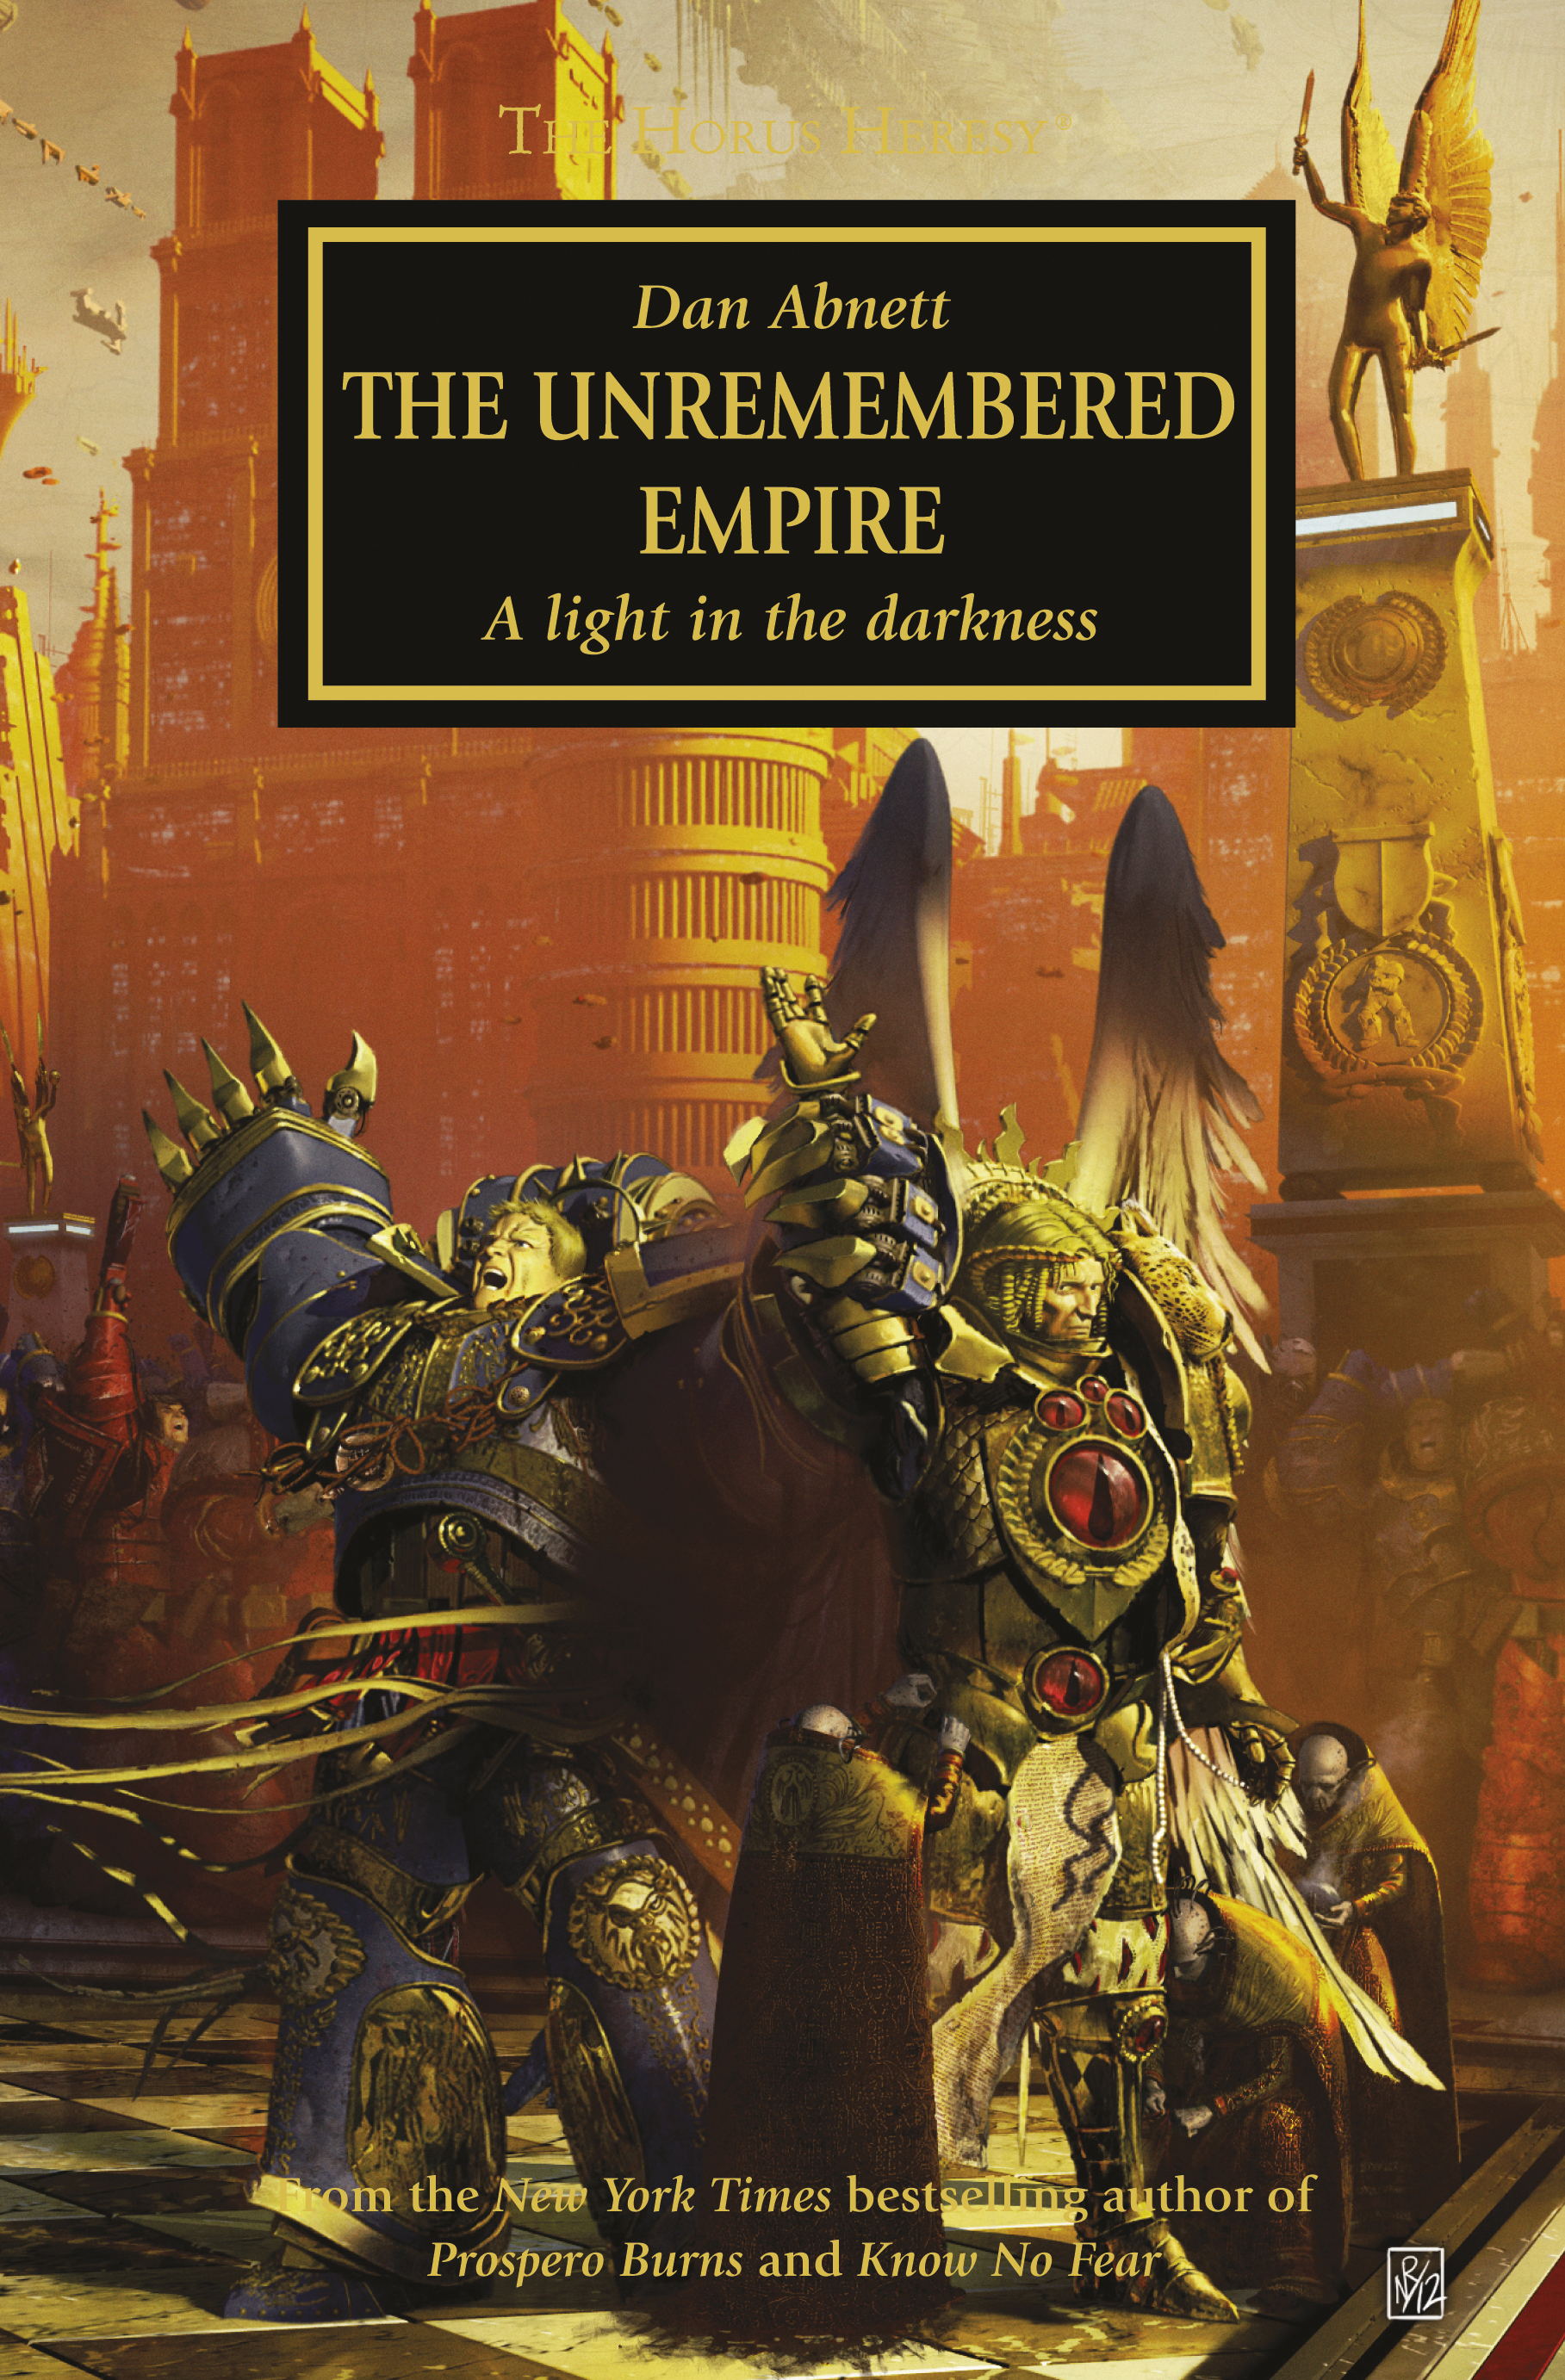 Unremembered empire 9781849706926 hr